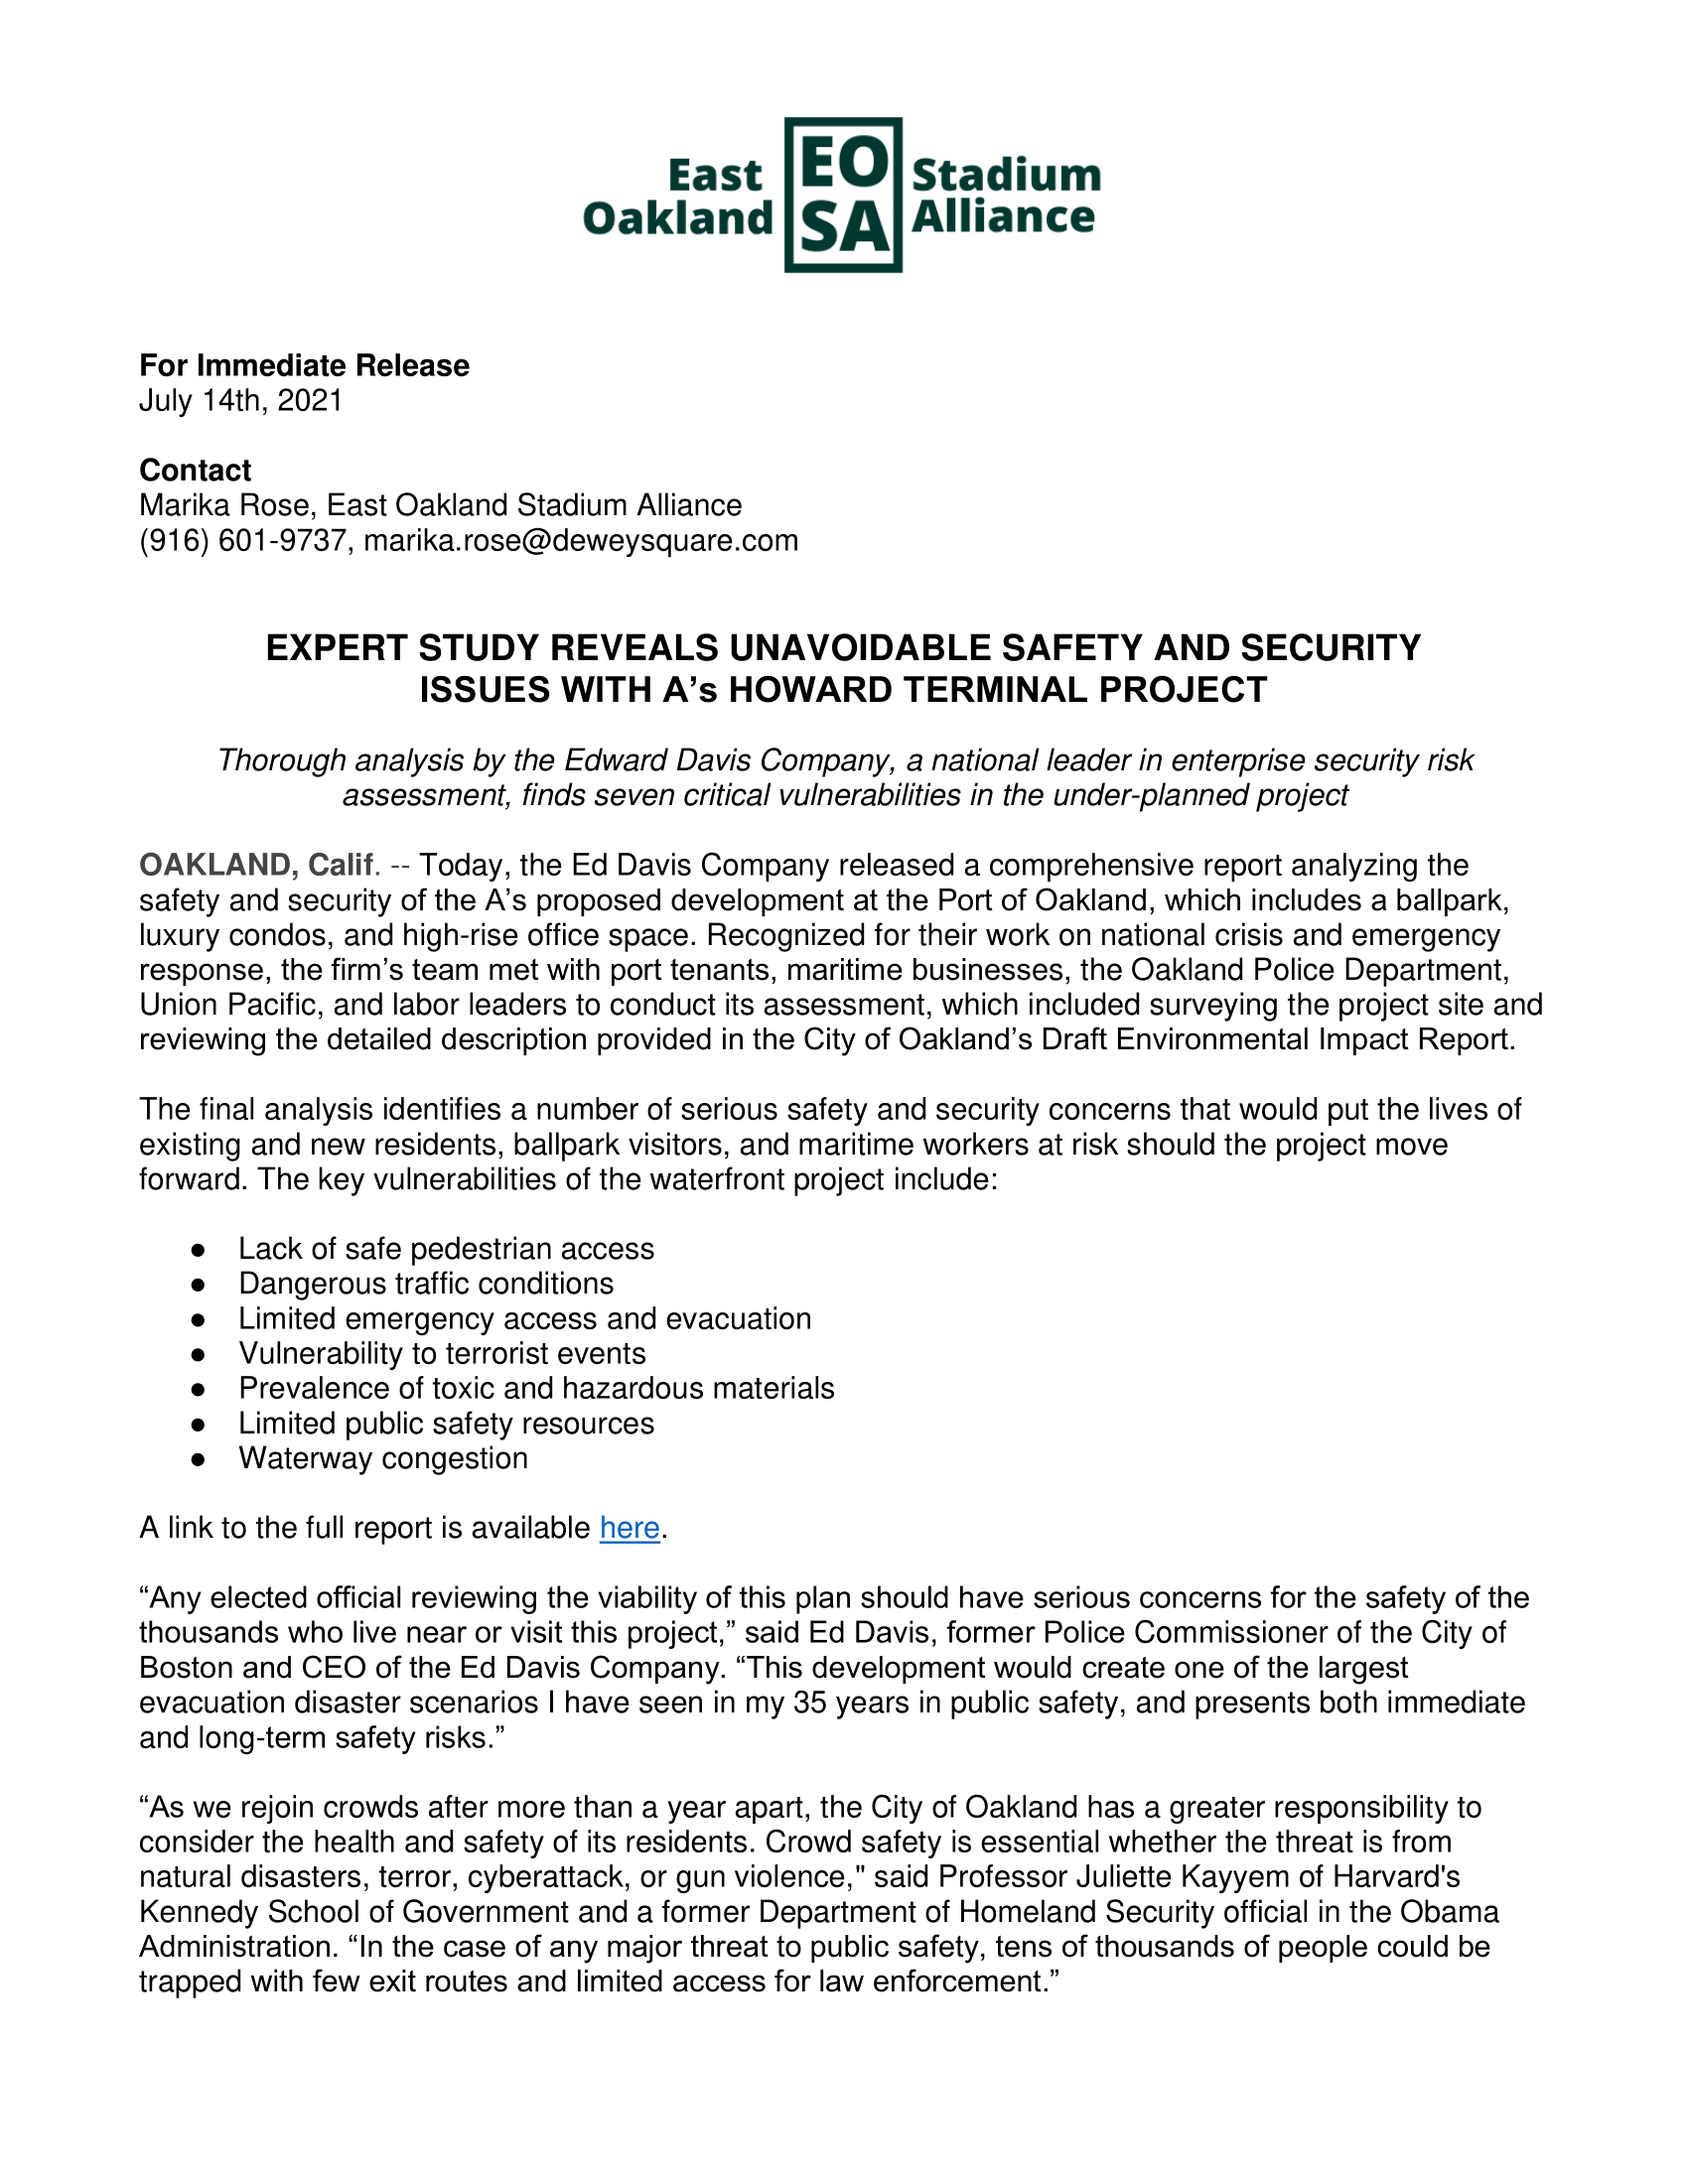 Safety_Study_Release_-_07.14.21-1.png